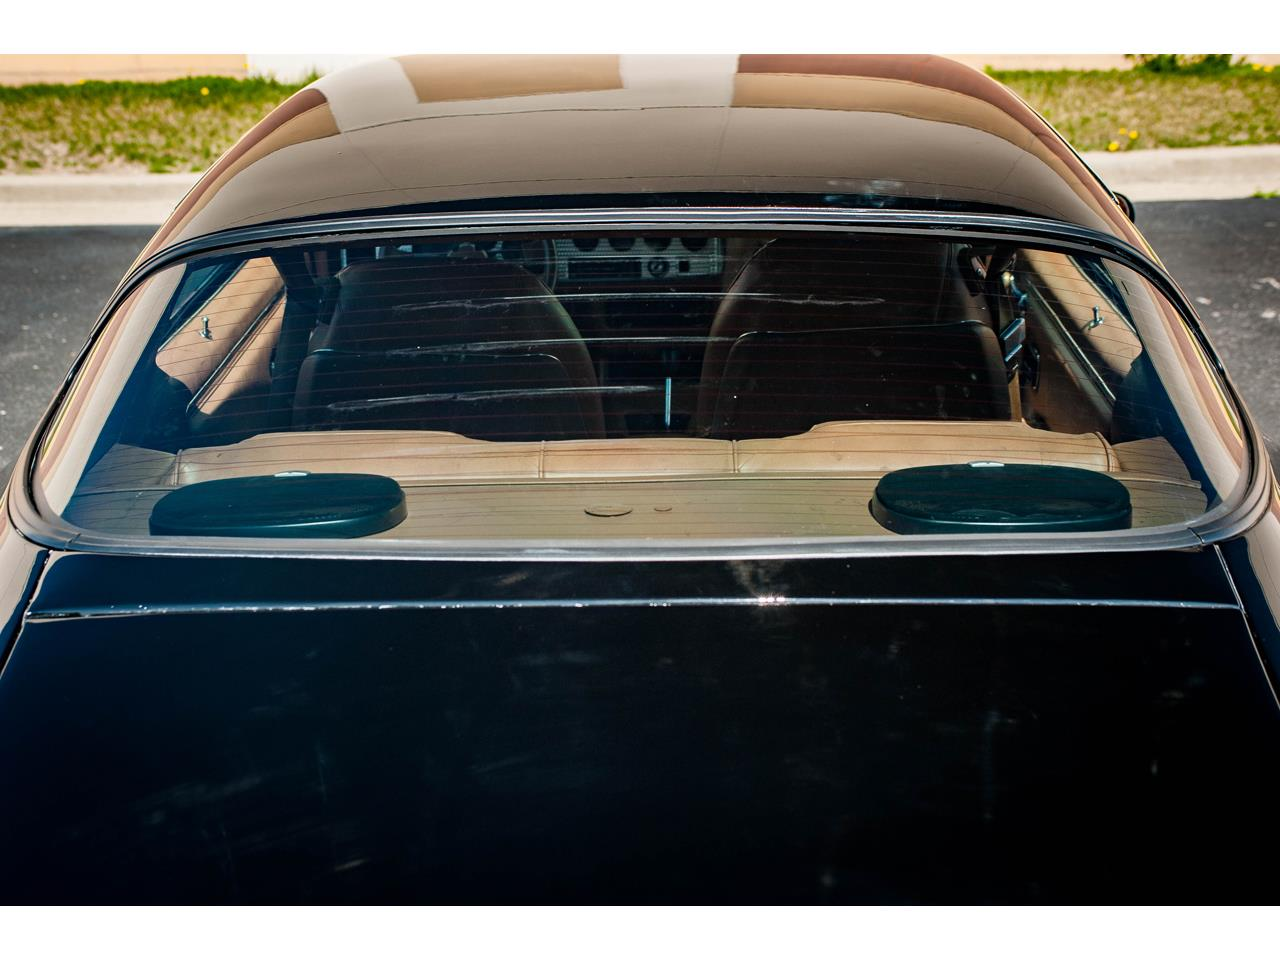 Large Picture of '79 Pontiac Firebird located in Illinois - $36,500.00 Offered by Gateway Classic Cars - St. Louis - QB8A